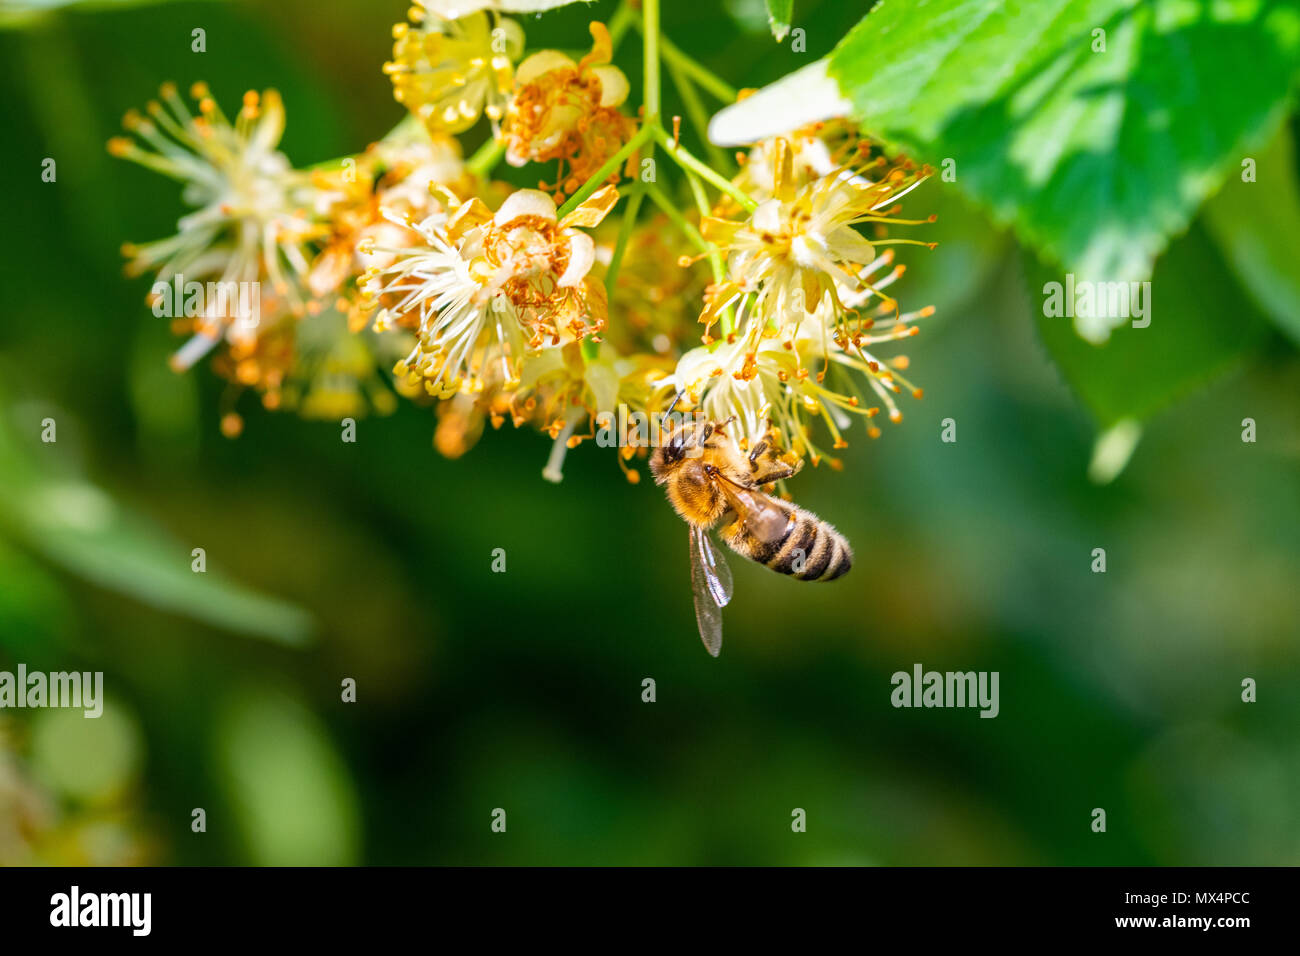 Honey bee in Linden Flowers, Apis Carnica in Linden Flowers, close up of Bumble bee collecting nectar, honey, bee pollinating - Stock Image